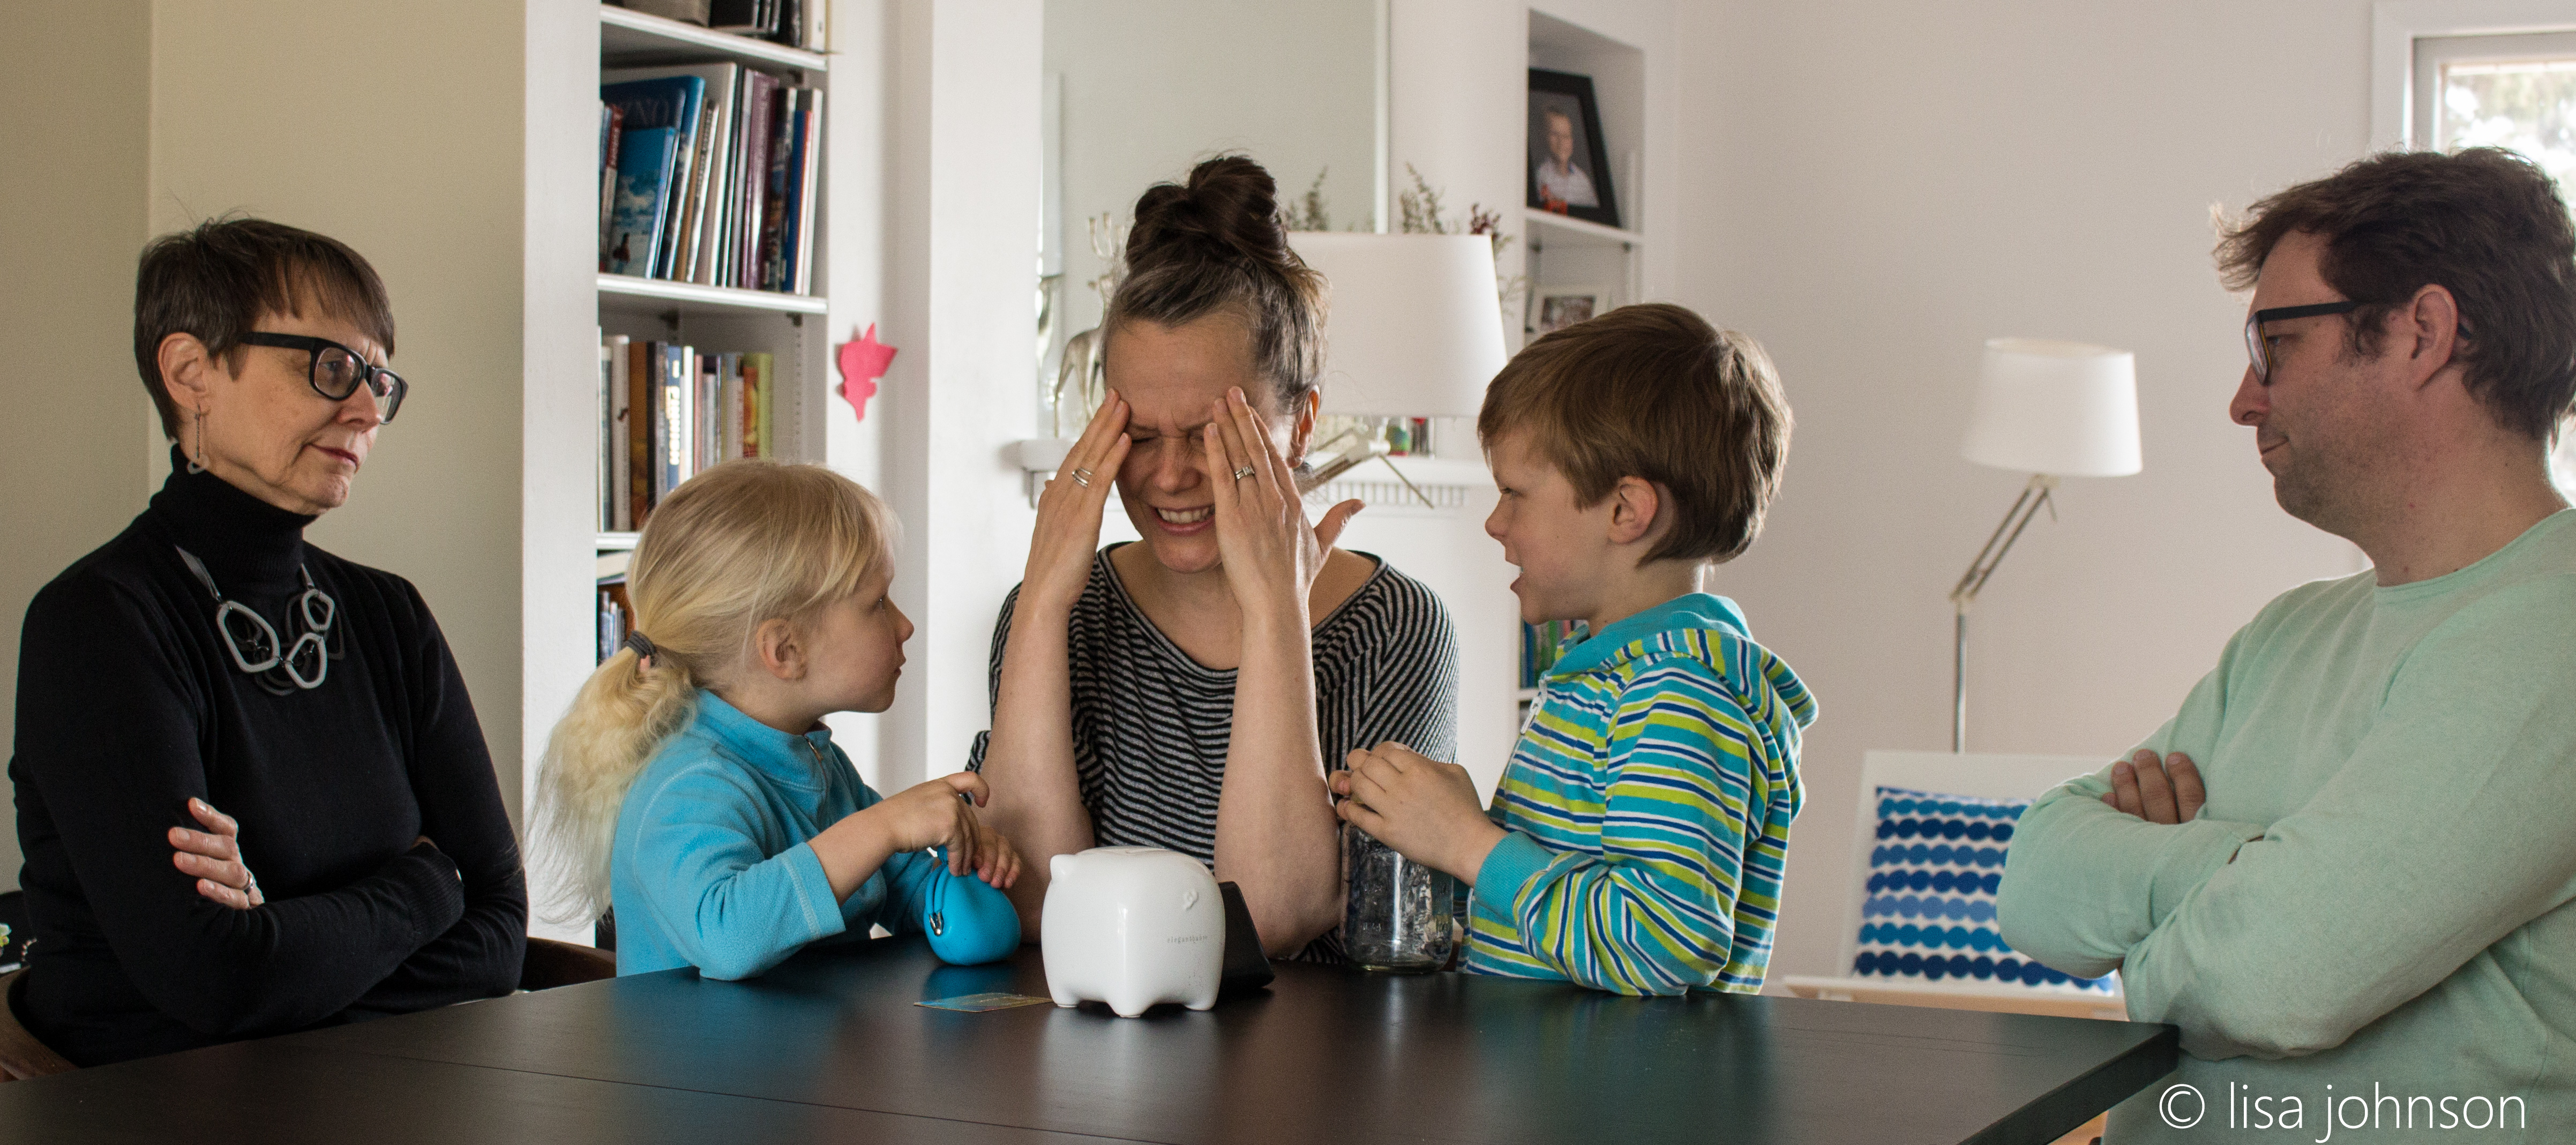 Caption: Photo taken for illustrative purposes only. The Salmela family never has awkward conversations about money., Credit: ©lisa johnson/Thorsburg Photography